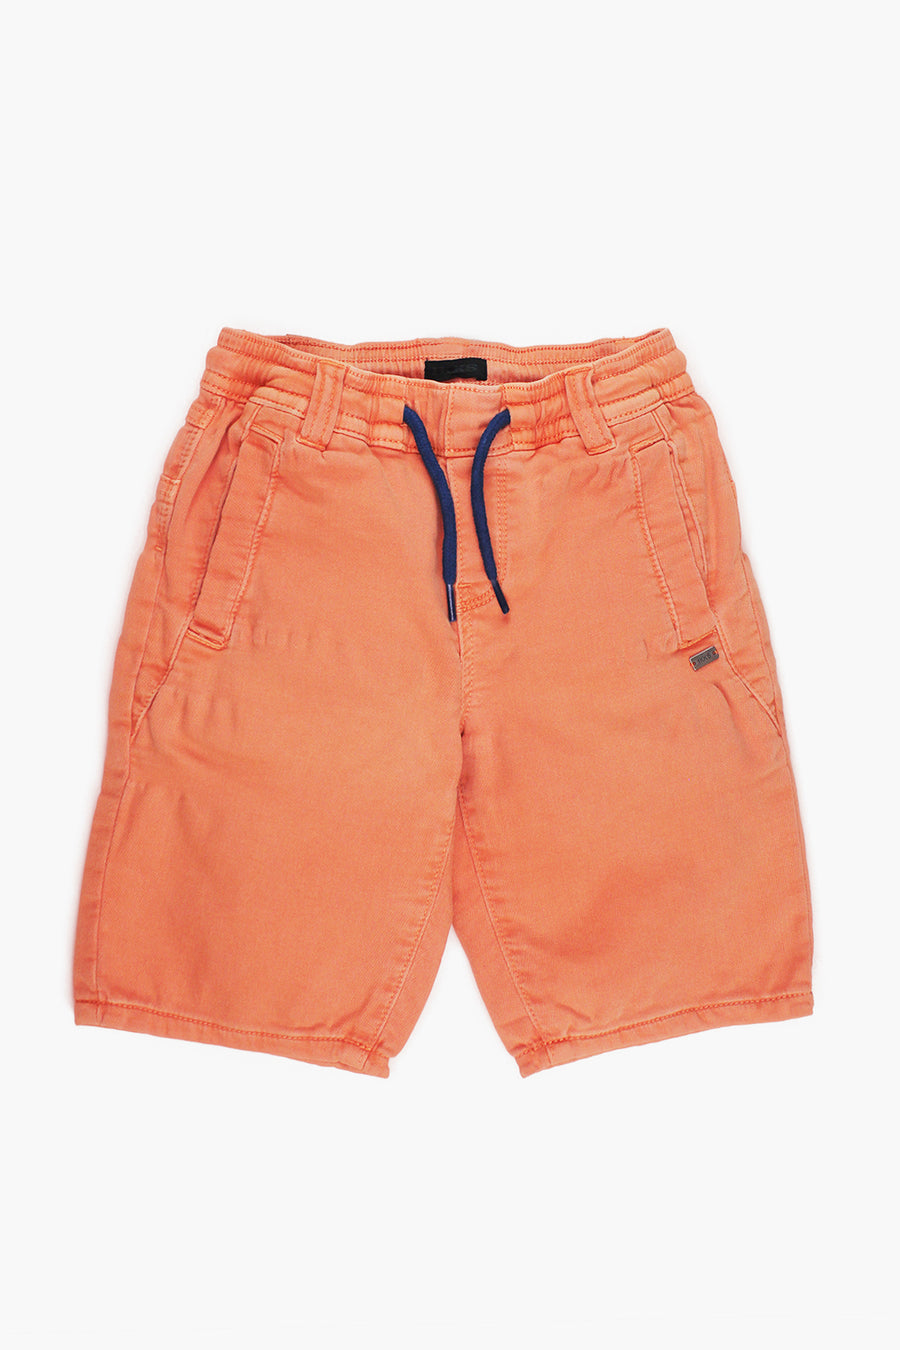 IKKS Pull-Up Boys Shorts - Tangerine